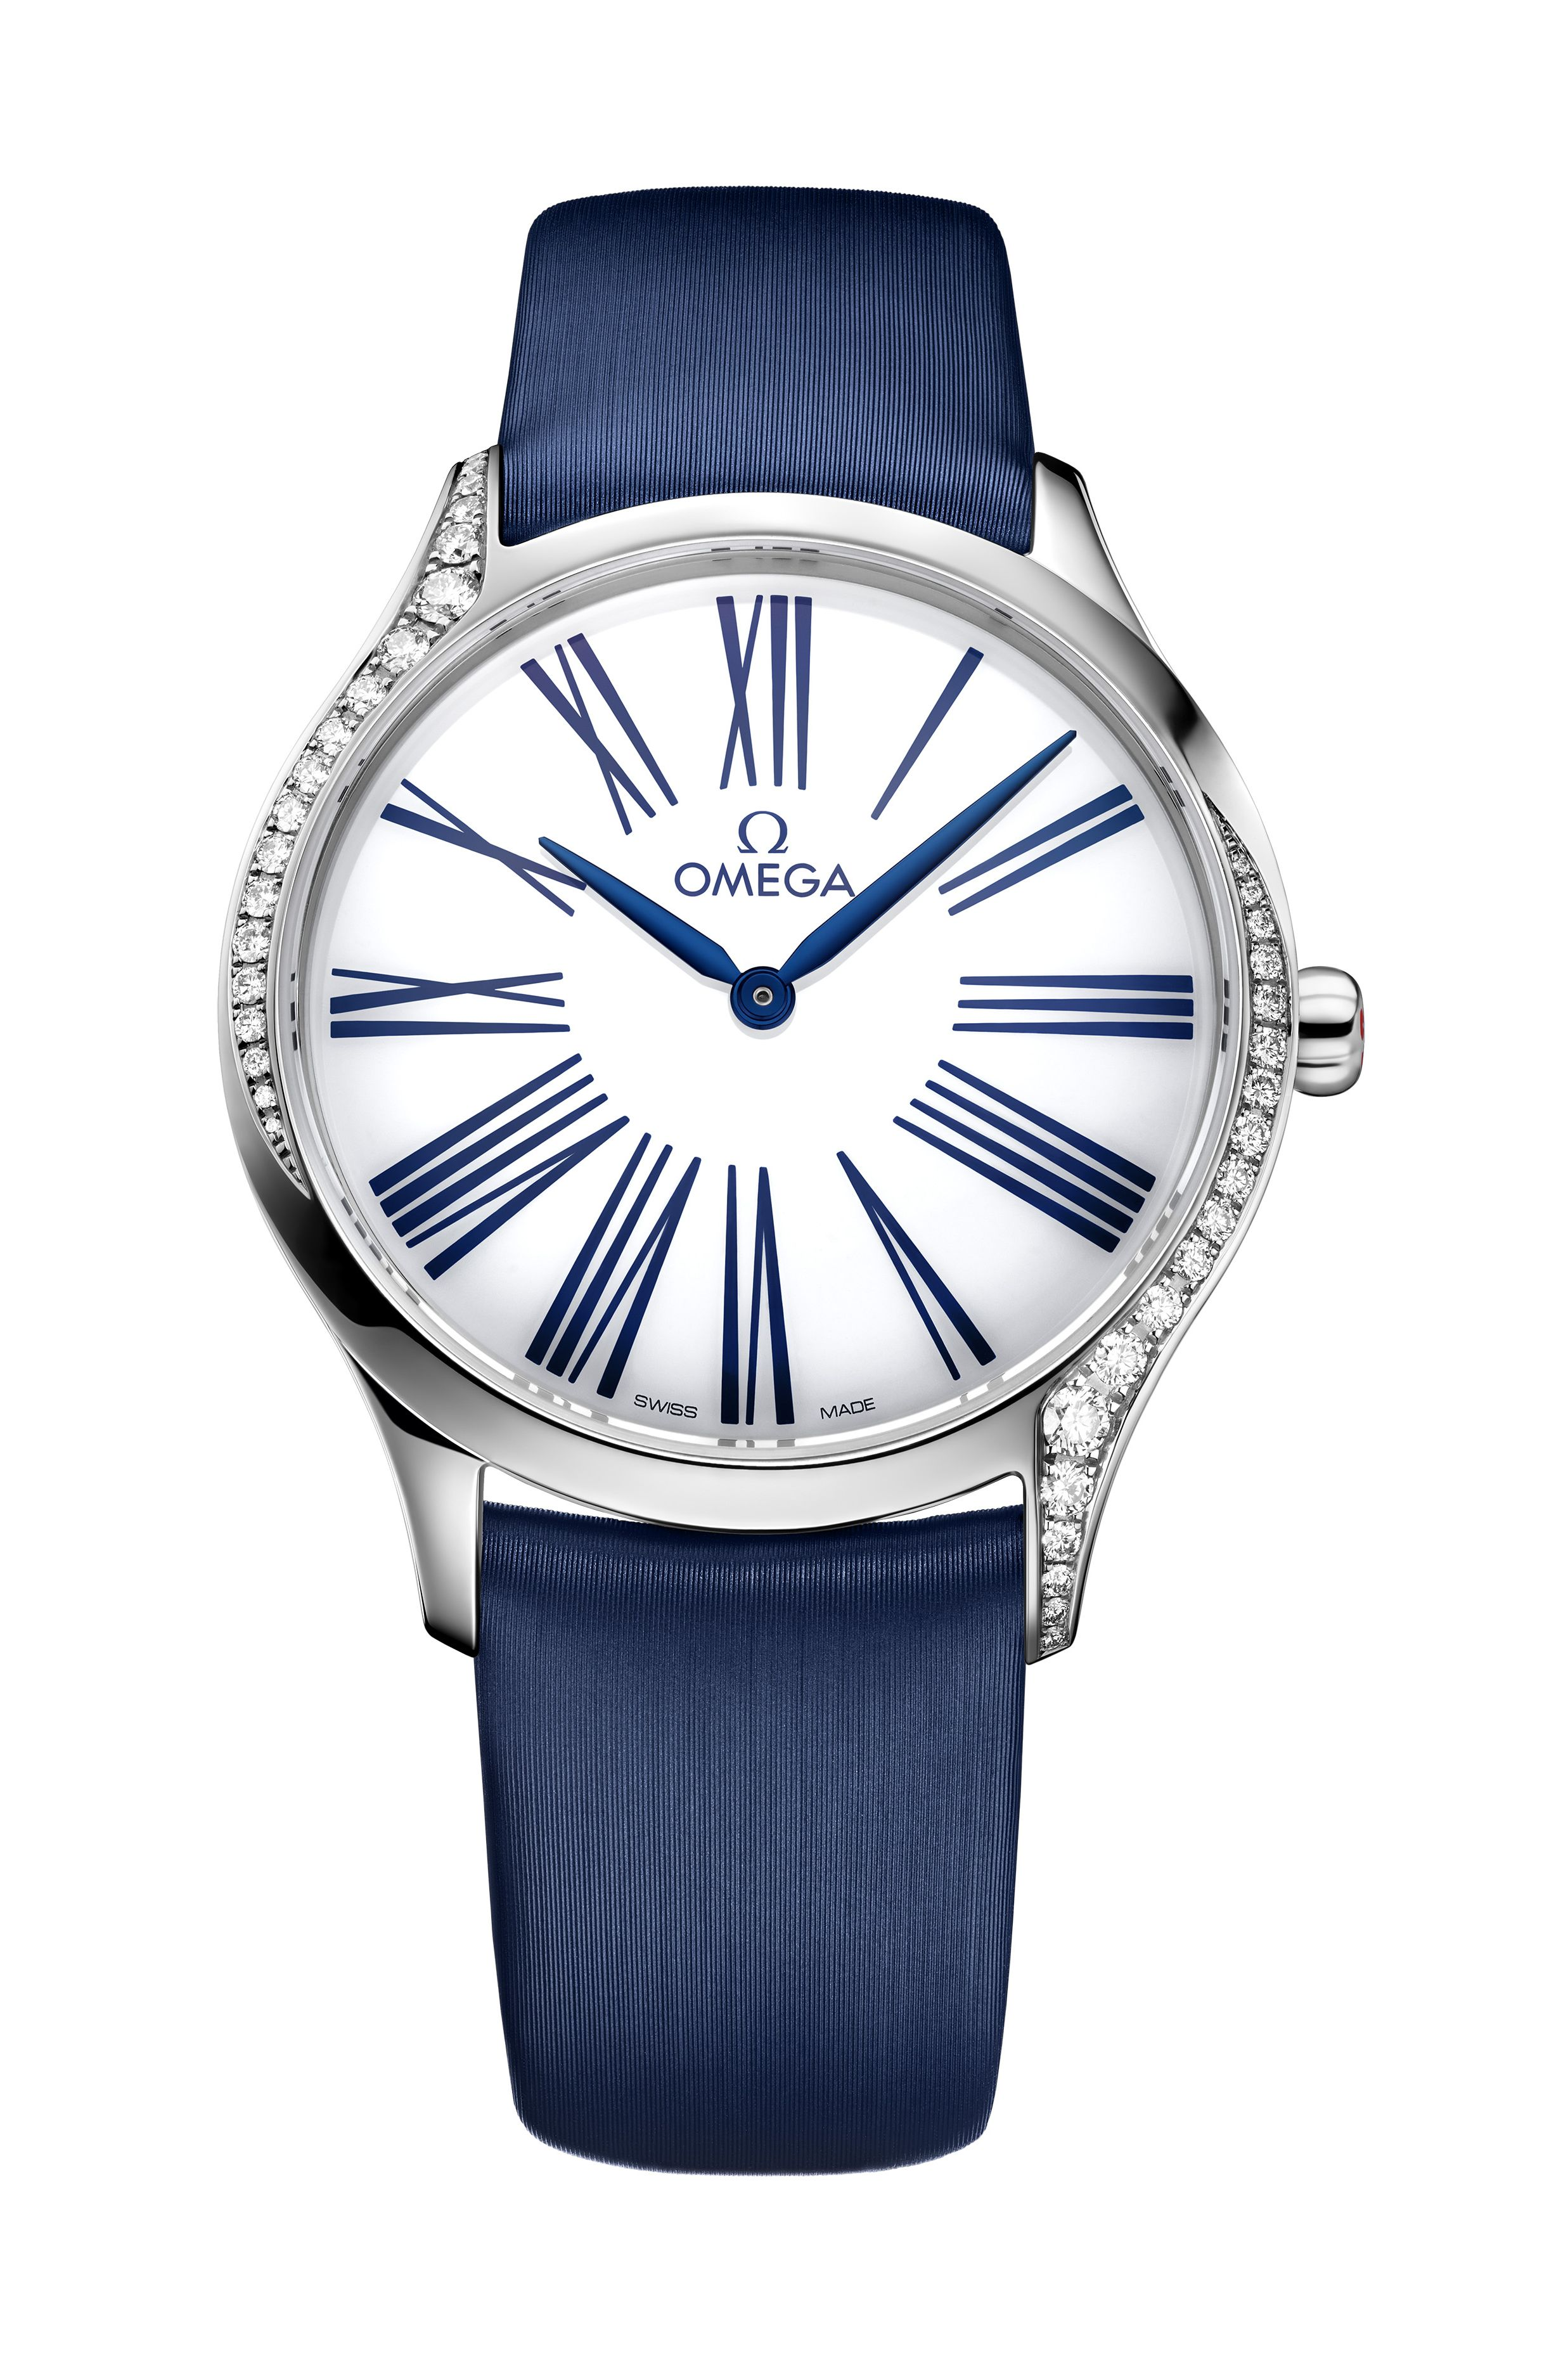 16 Best Watches For Women In 2019 Top Designer Watches For Women